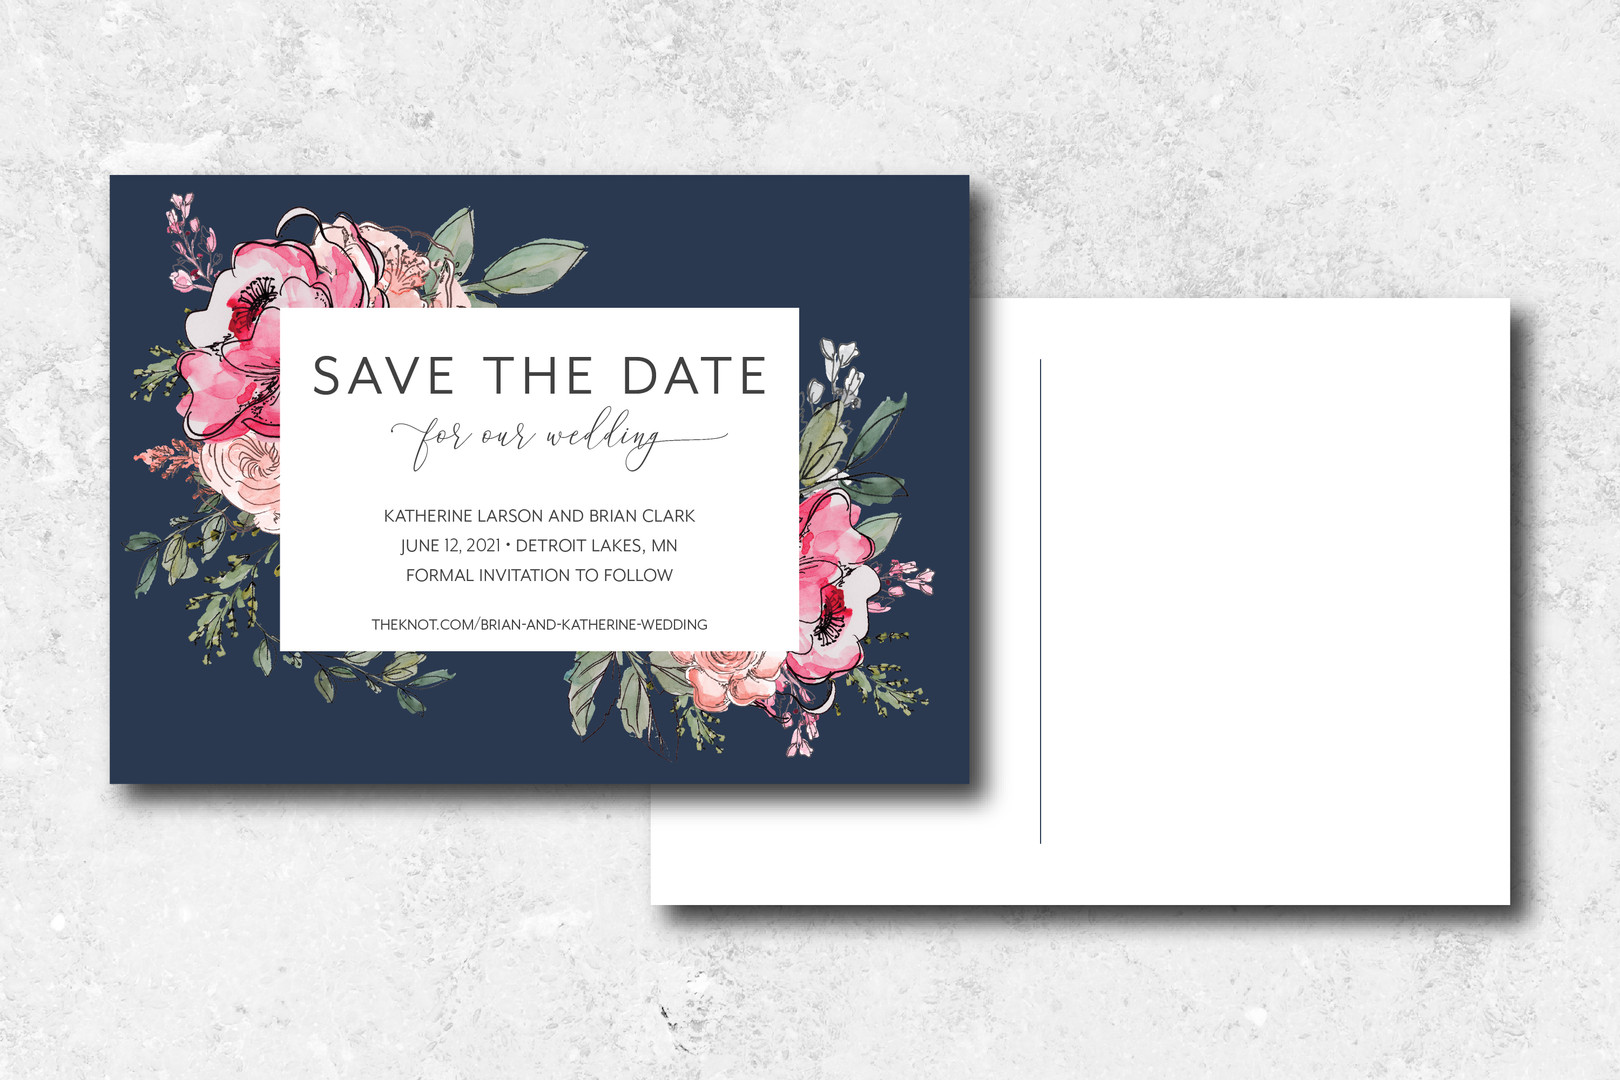 katie&brian save the date-01.jpg